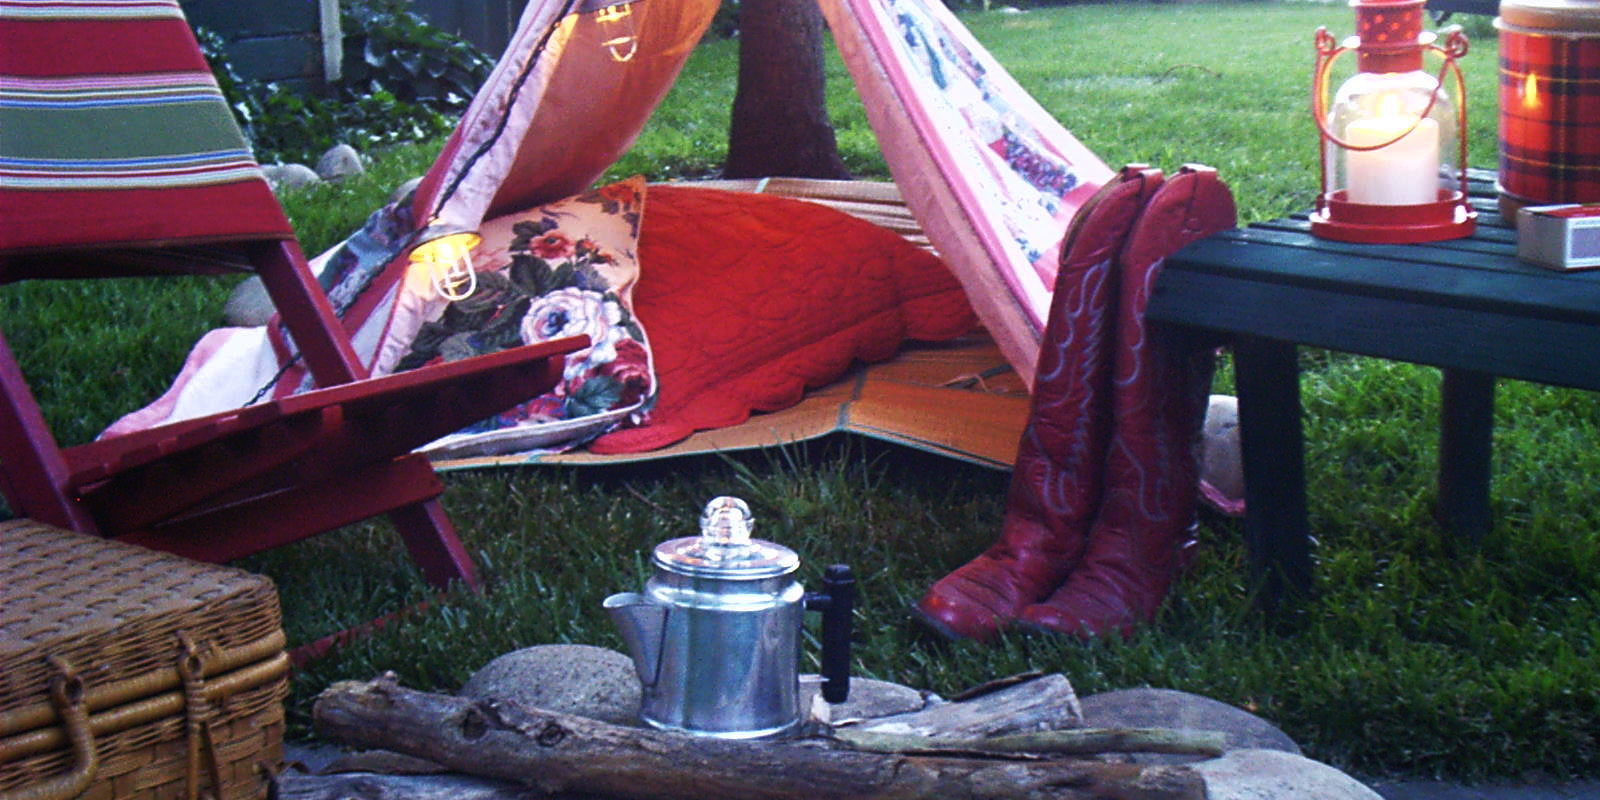 Holiday Ideas Backyard Camping pertaining to 14 Genius Concepts of How to Improve Backyard Campout Ideas